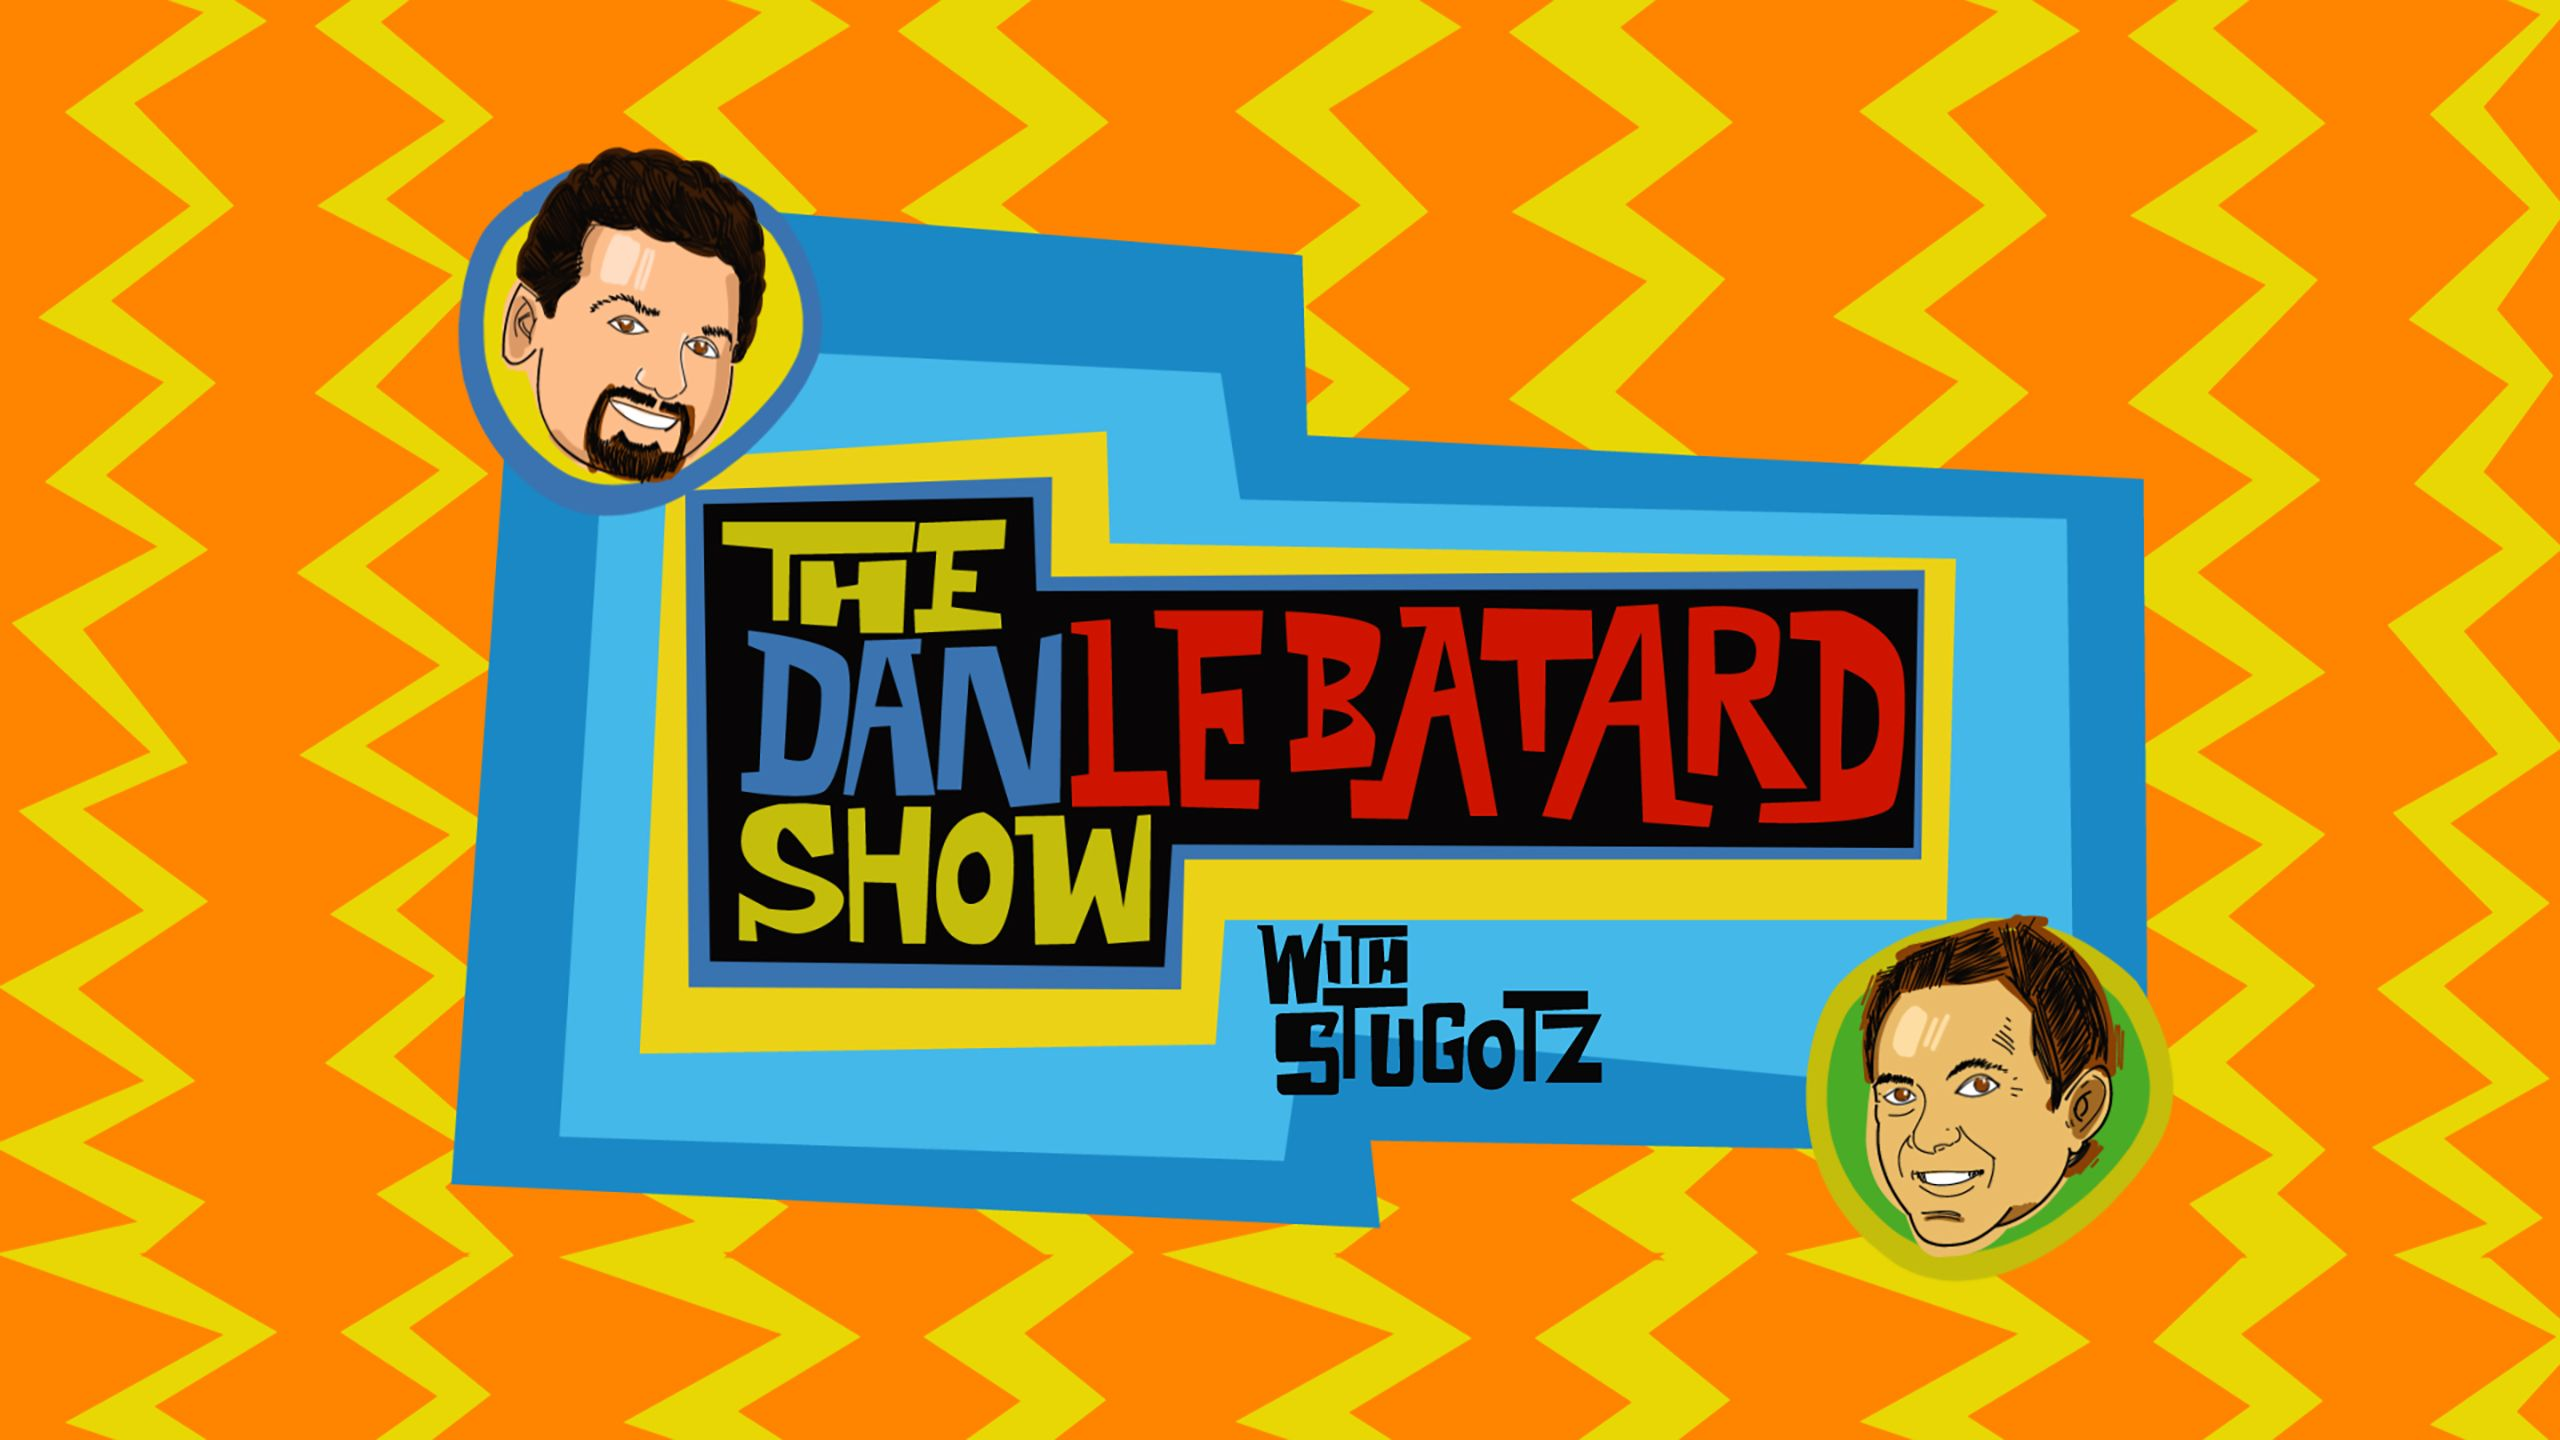 Mon, 4/23 - The Dan Le Batard Show with Stugotz Presented by Progressive